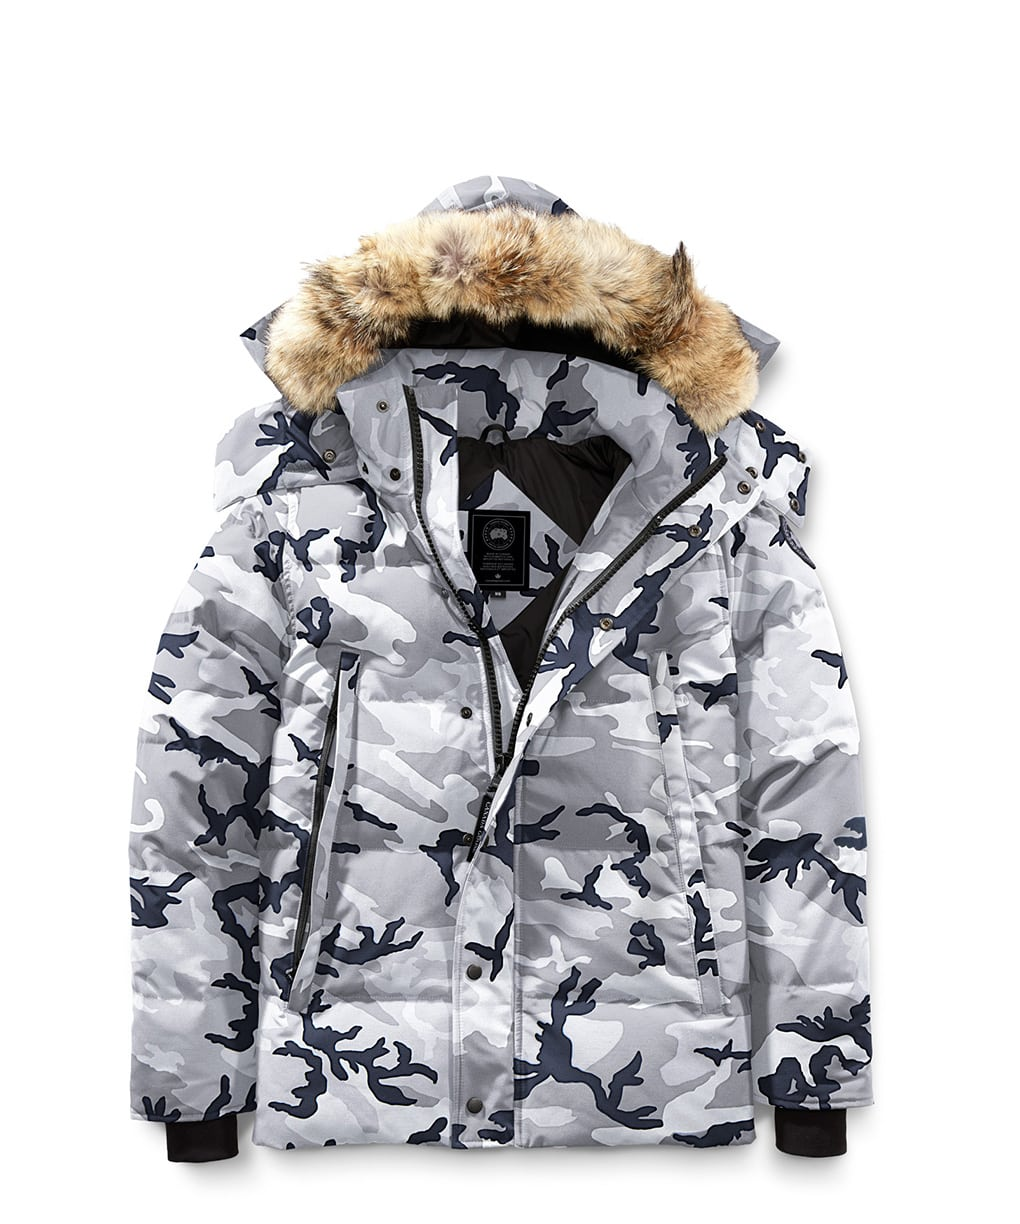 WYNDHAM PARKA BLACK LABEL